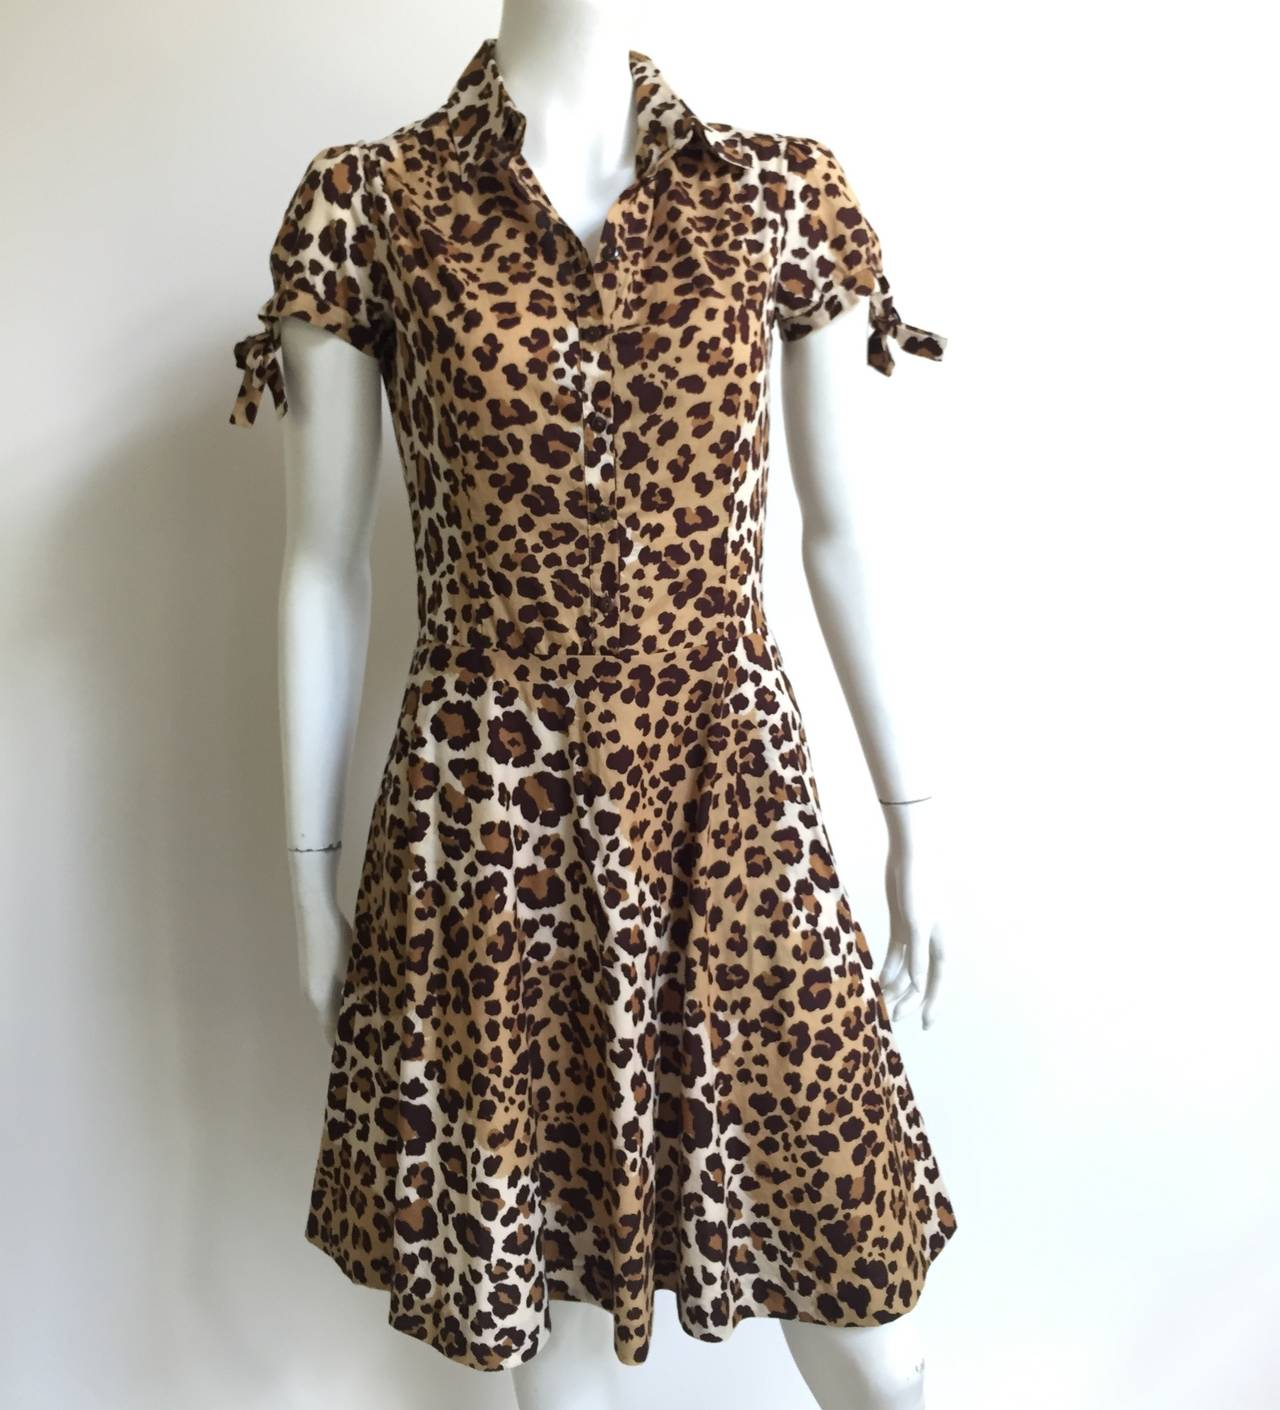 Moschino cheetah print dress with pockets size 6. 10